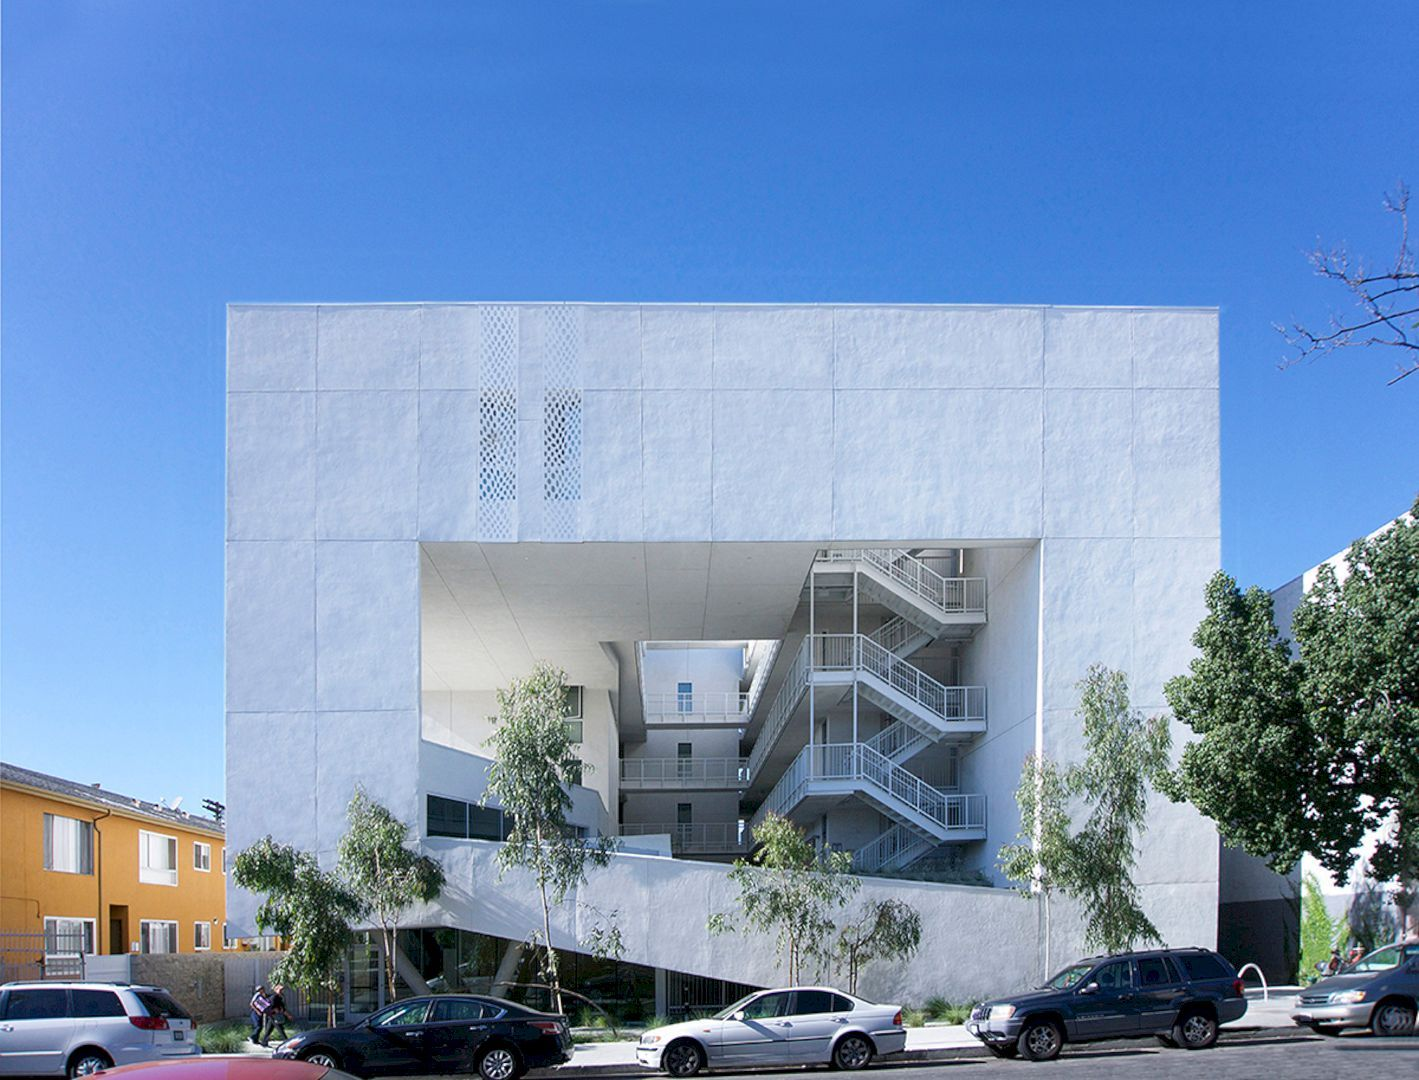 The Six Apartments Affordable Housing With Support Services And Rehabilitation For Disabled Veterans Modern Architecture Building Social Housing Architecture Architecture